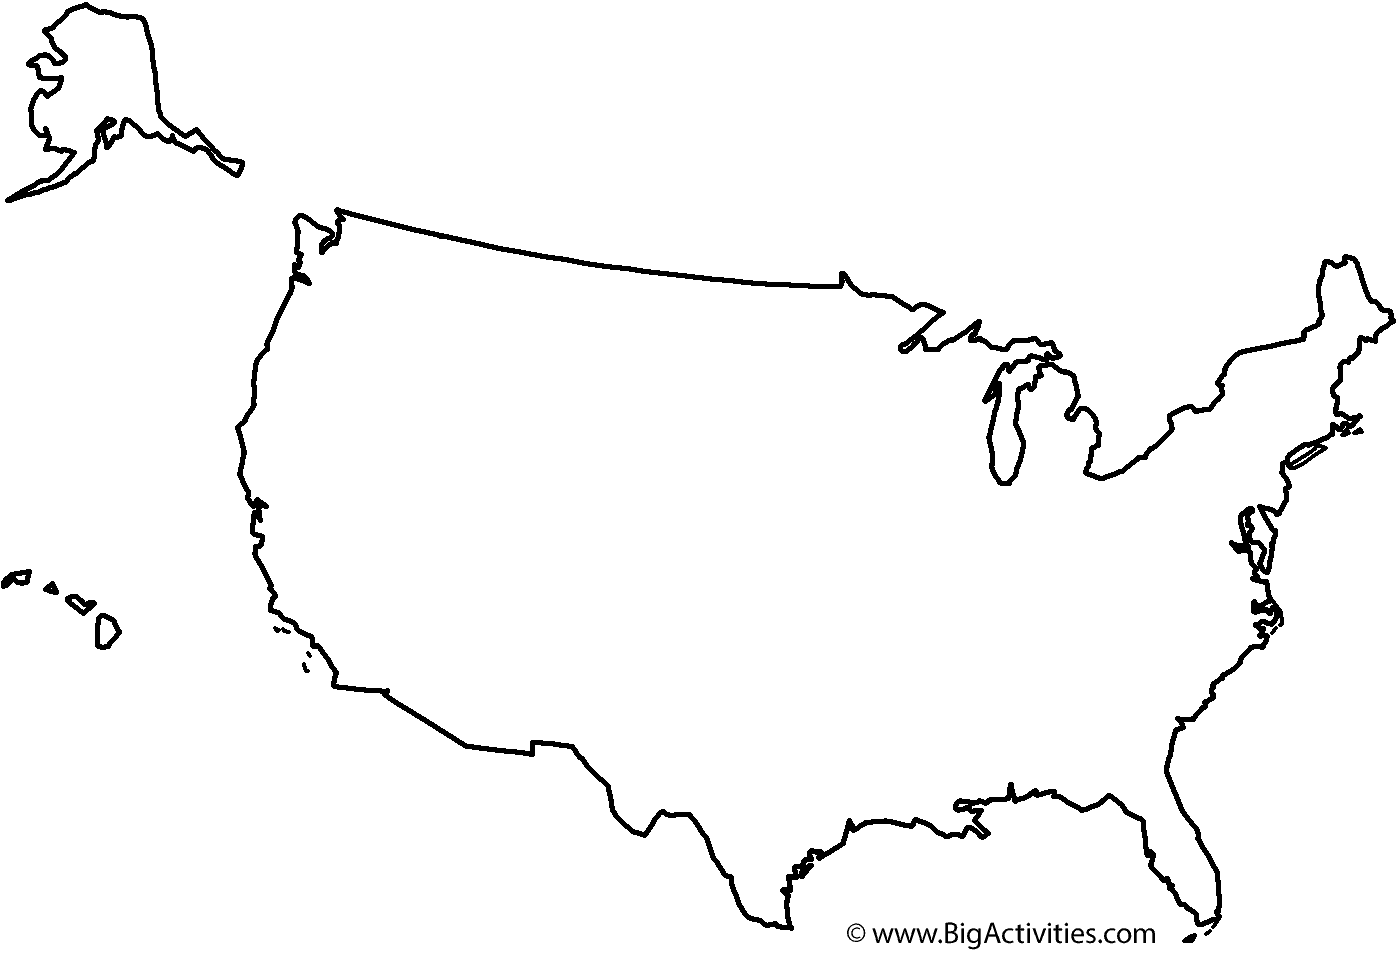 FileMap Of USA Without State Namessvg Wikimedia Commons Download